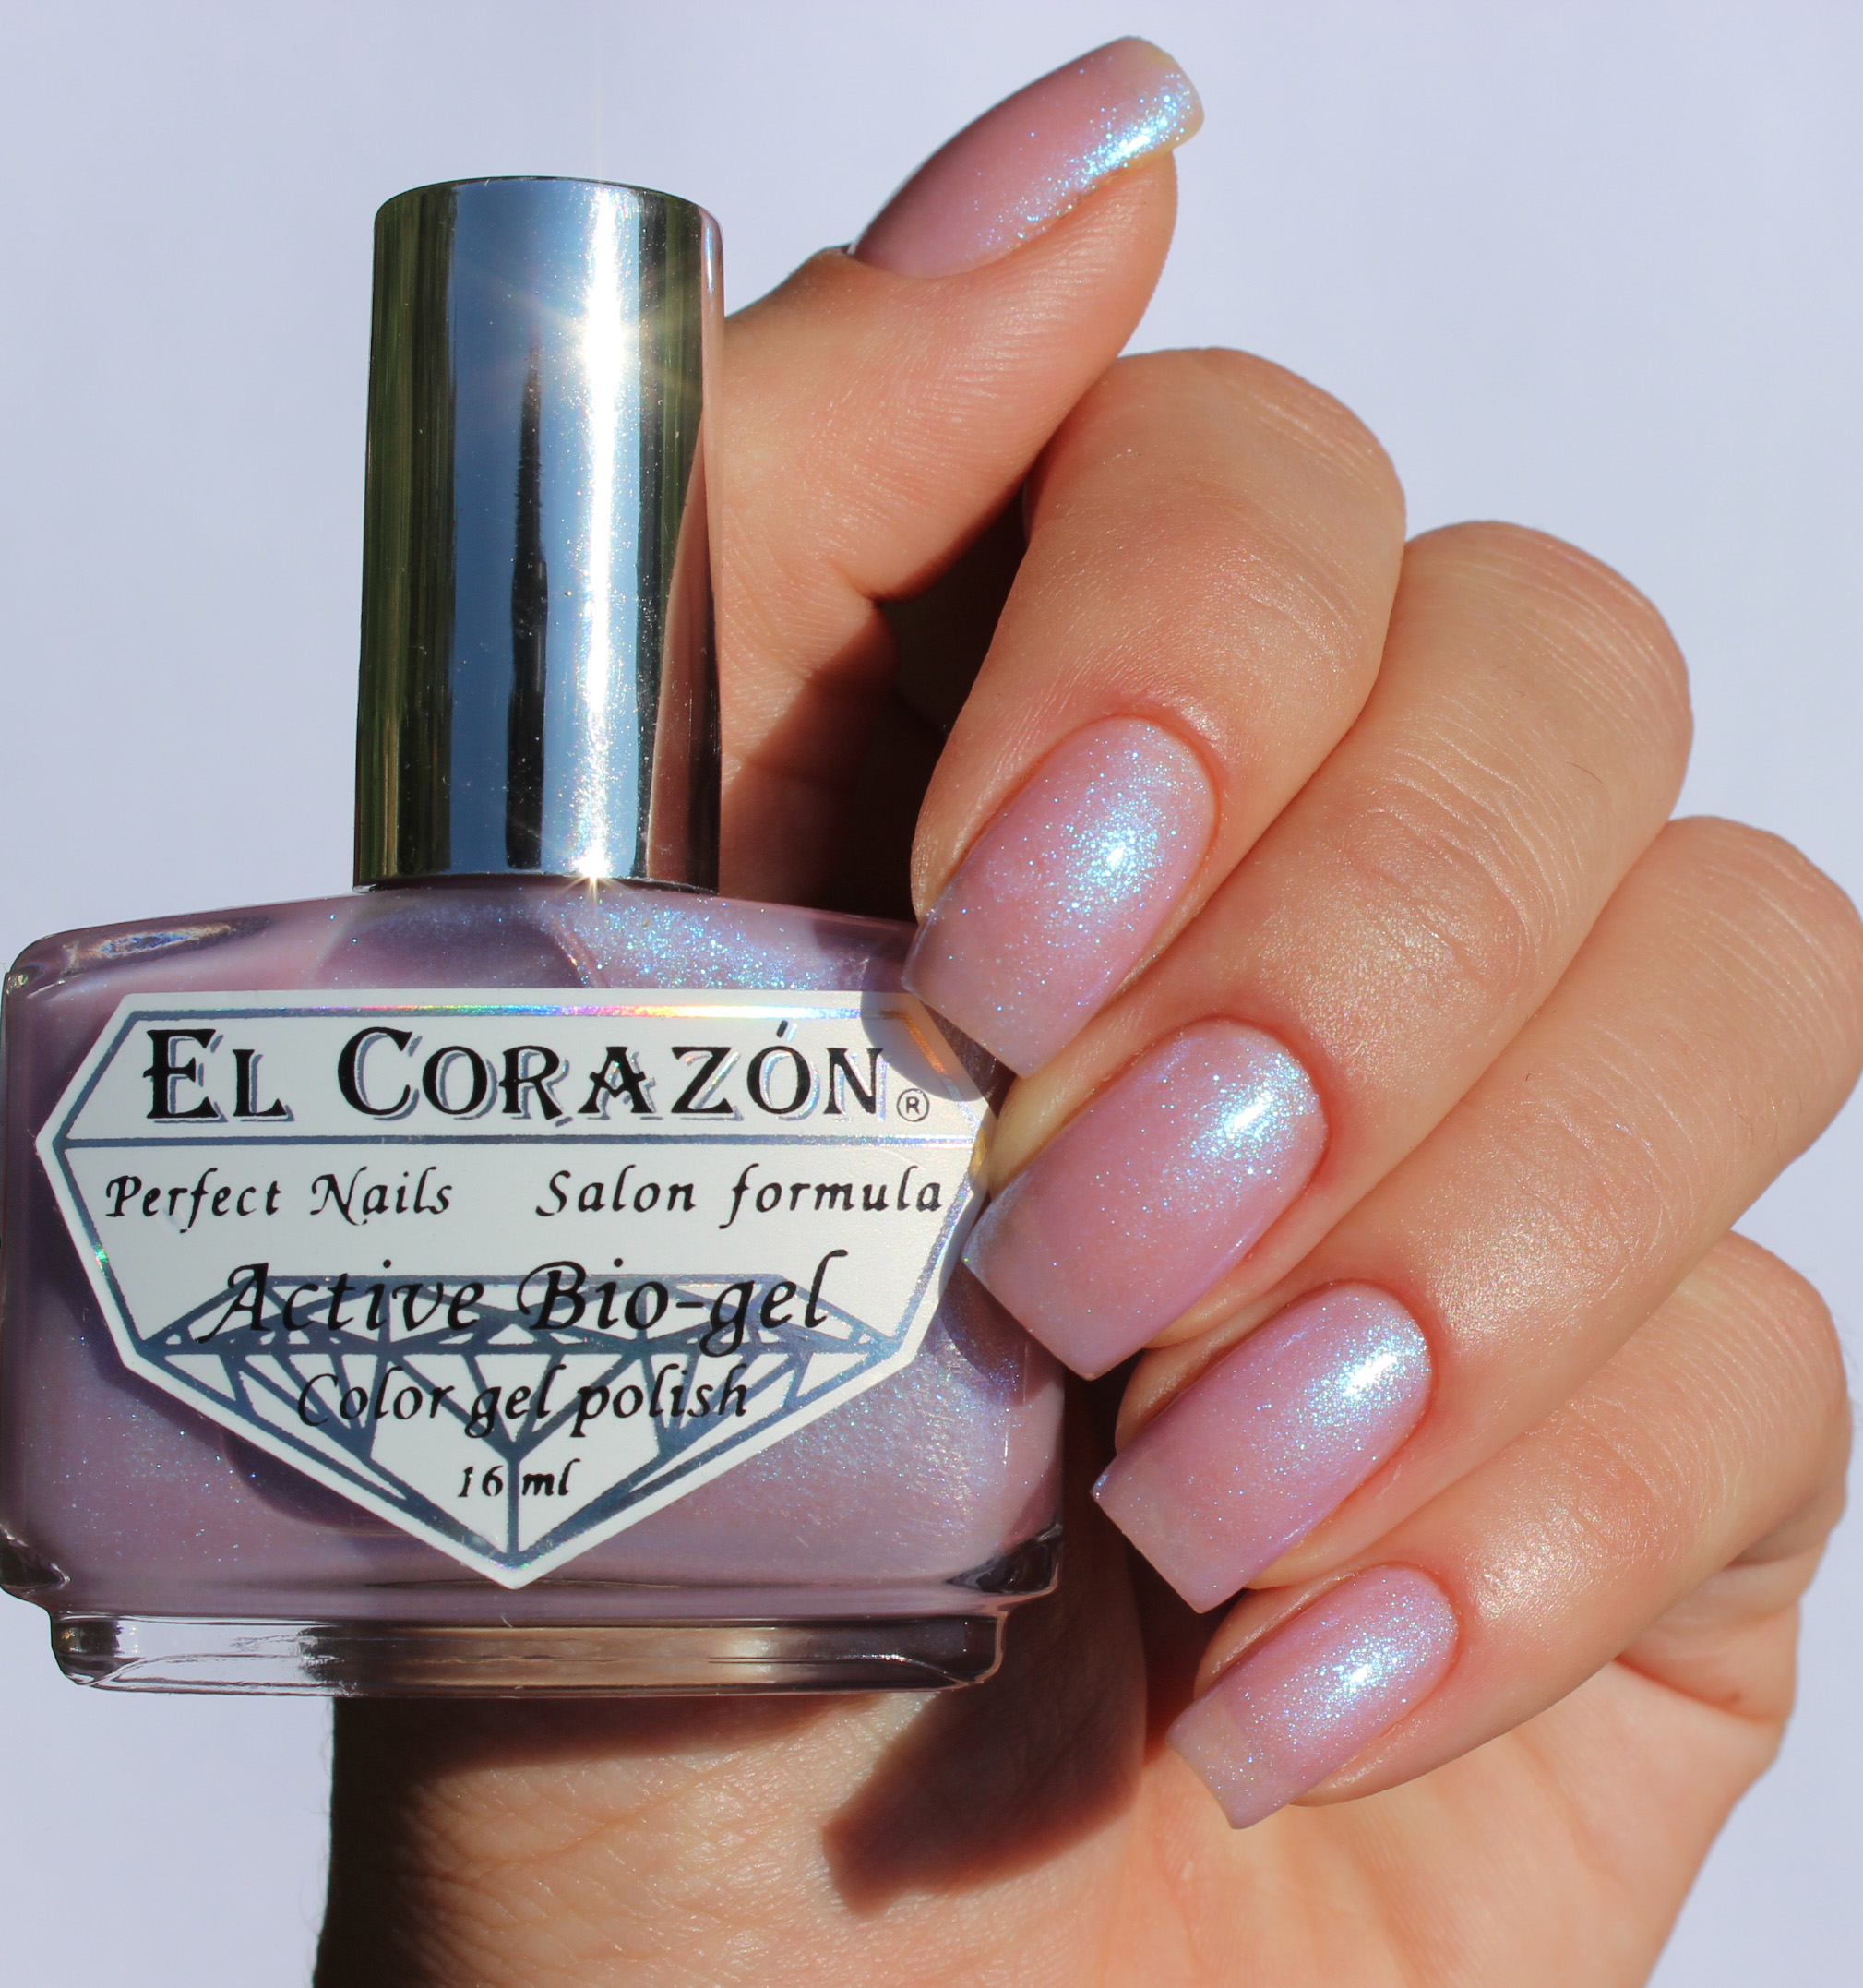 El Corazon Active Bio-gel № 423/557 Magic Smoke